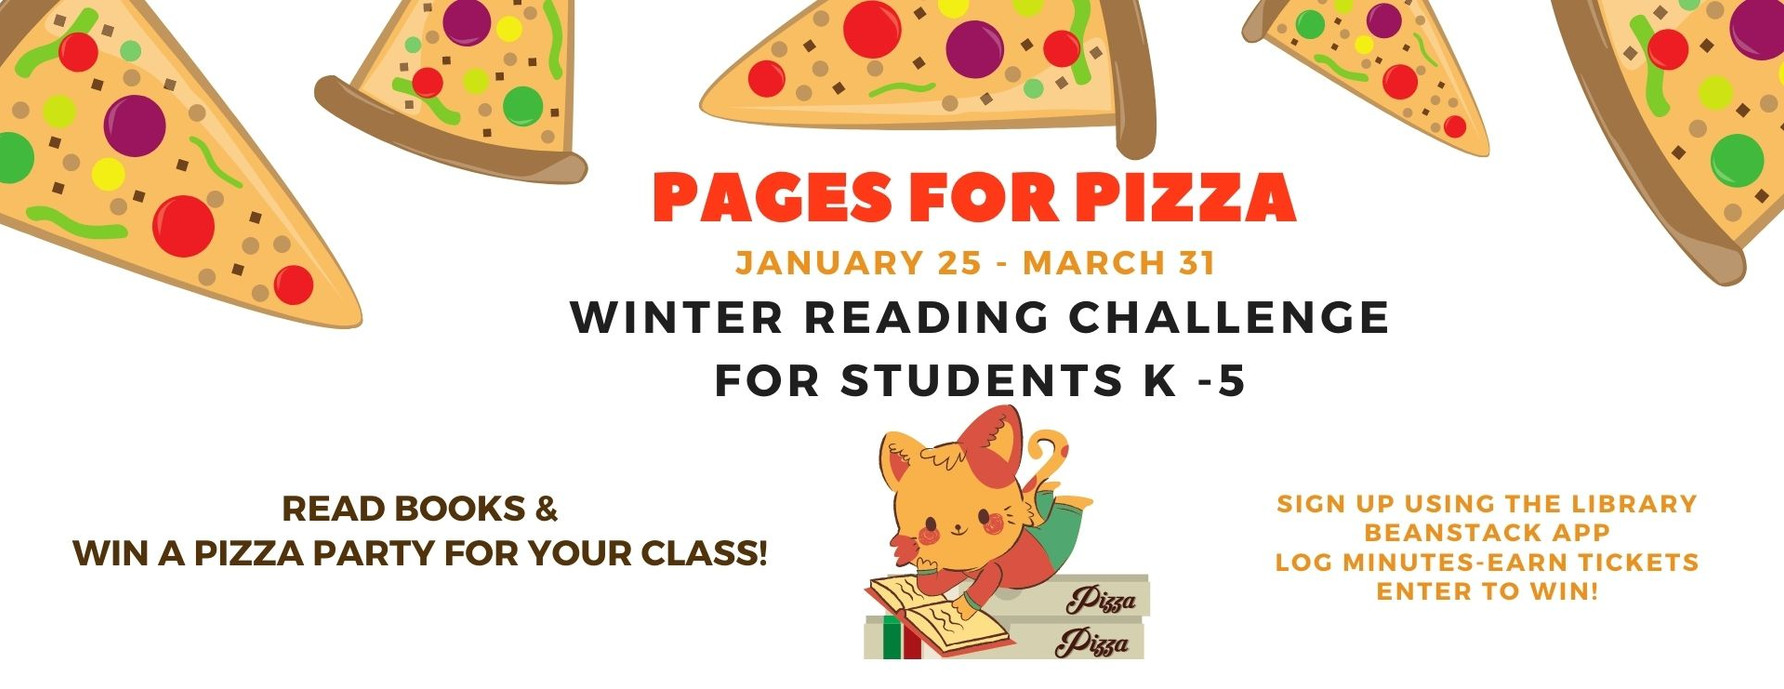 Pages for Pizza Winter Reading Challenge